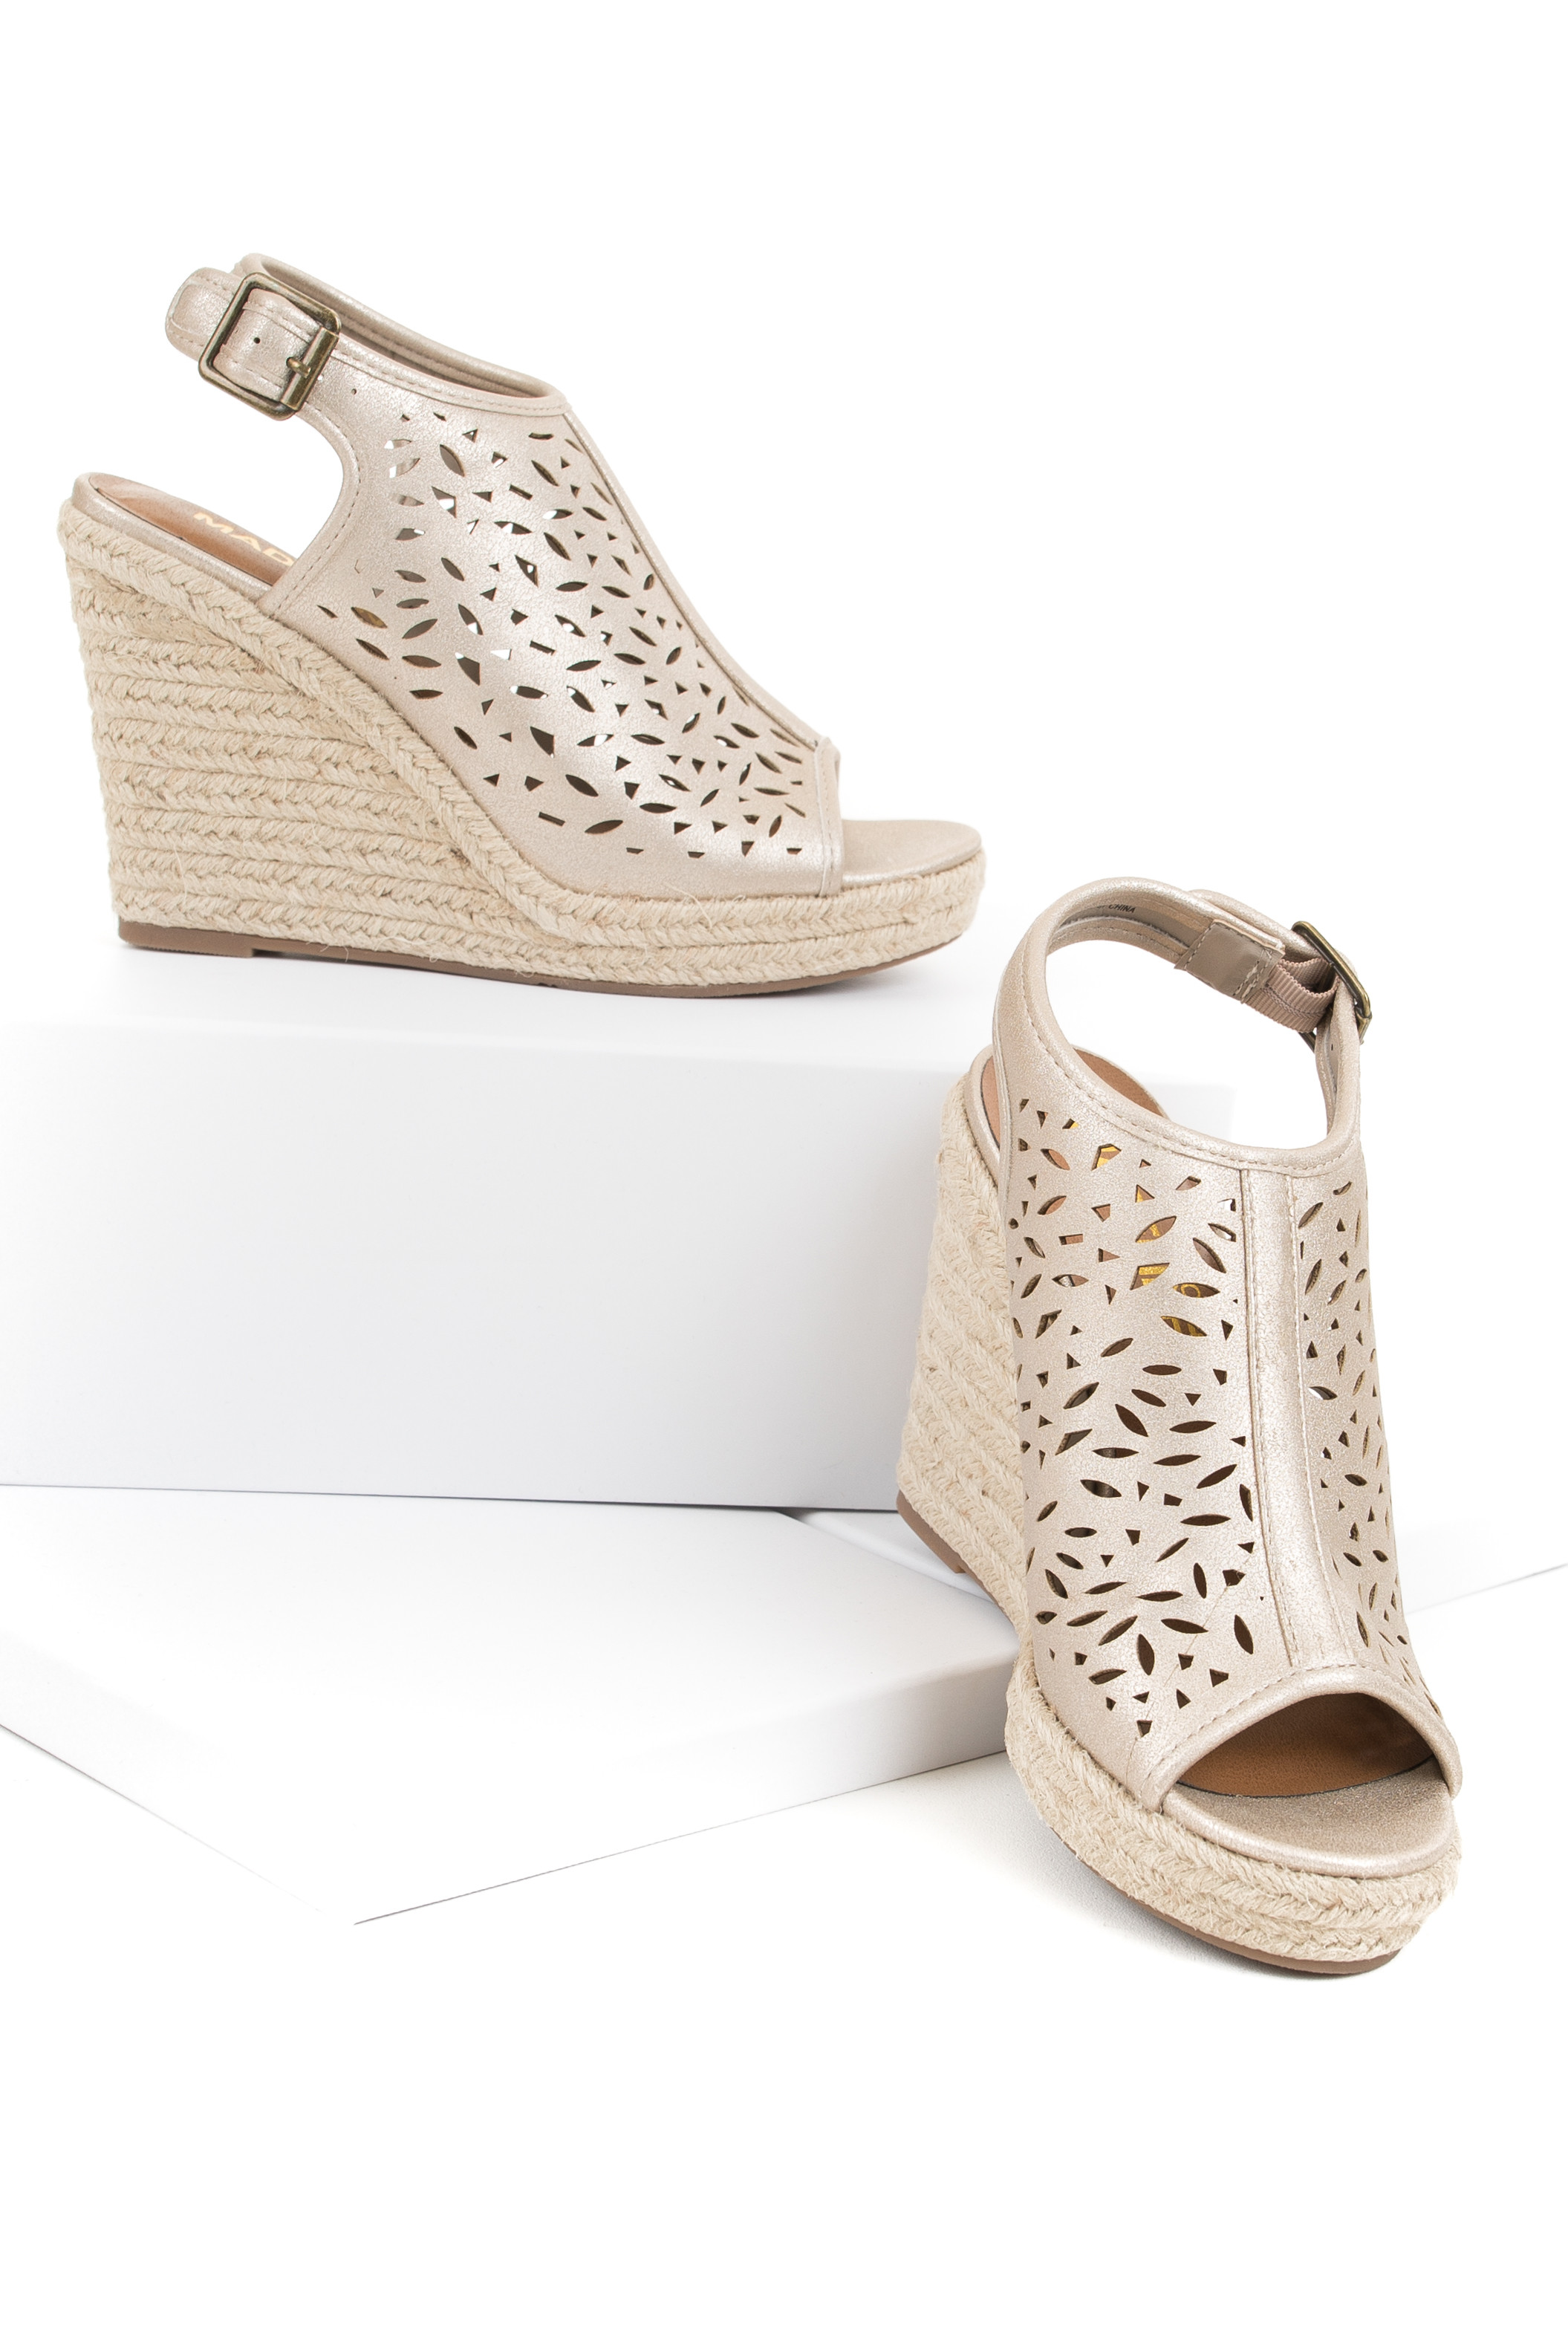 Metallic Champagne Open Toe Wedge with Laser Cutout Details